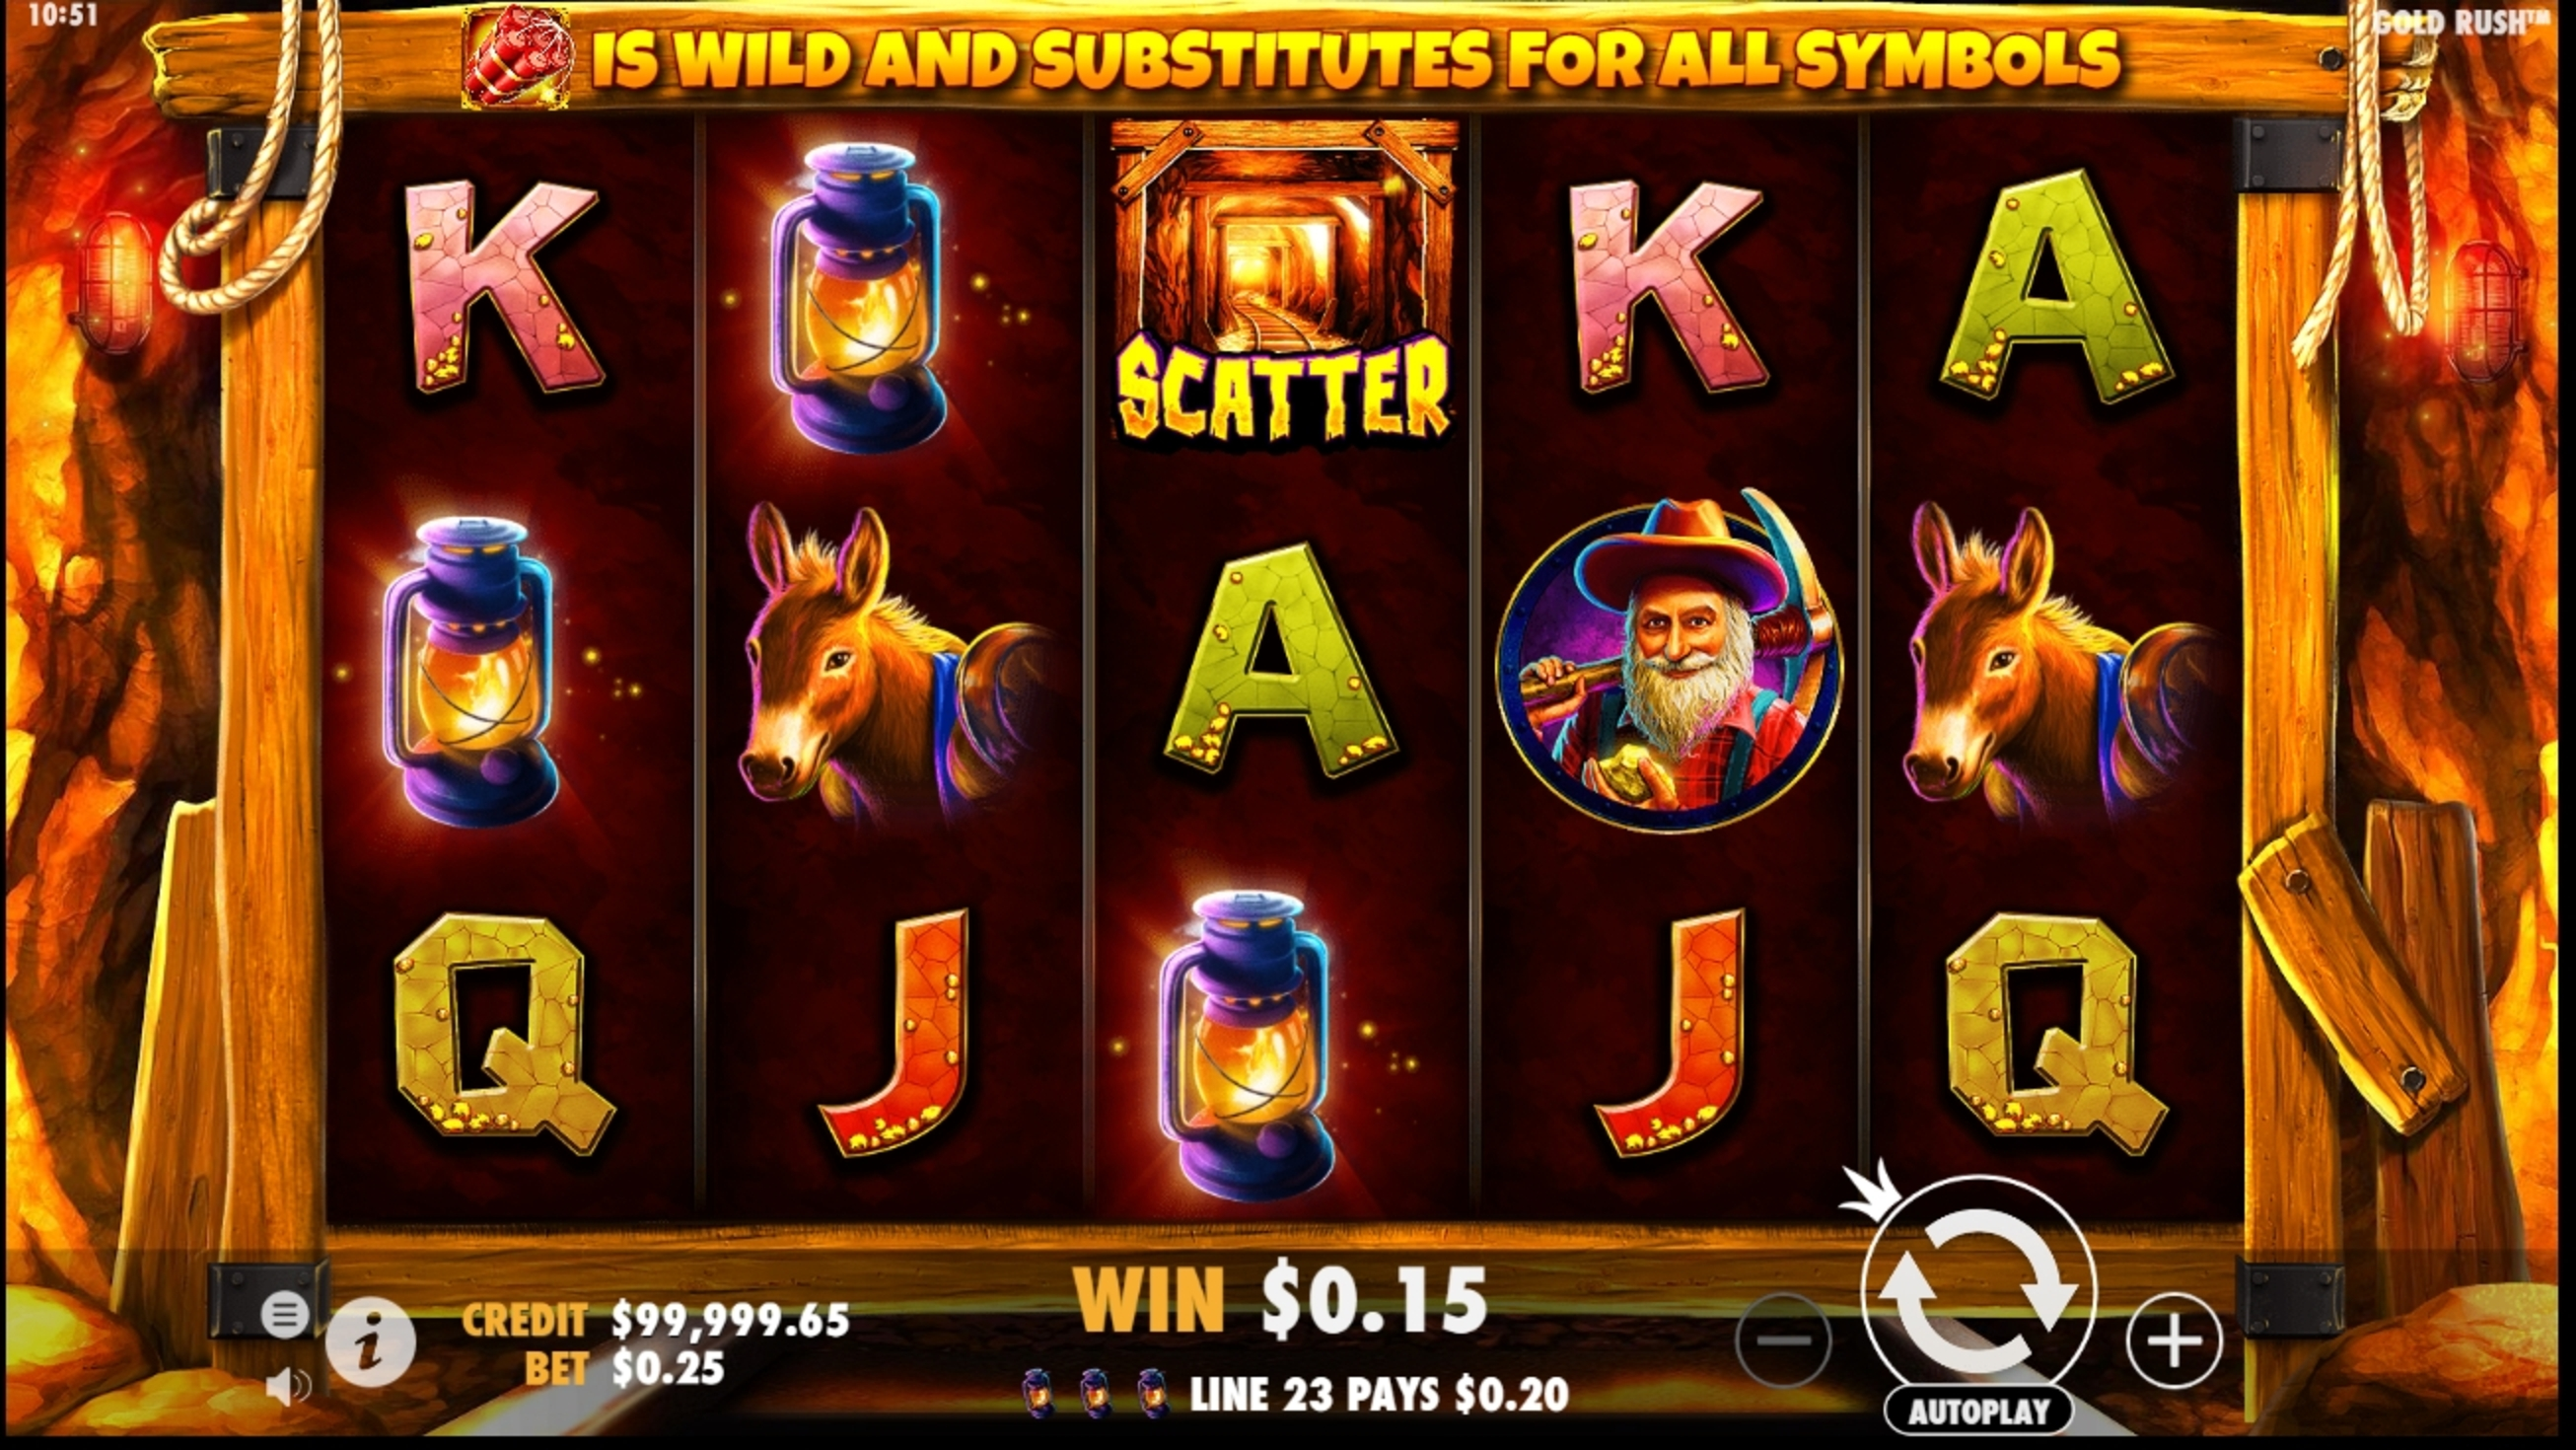 Win Money in Gold Rush (NetEnt) Free Slot Game by NetEnt